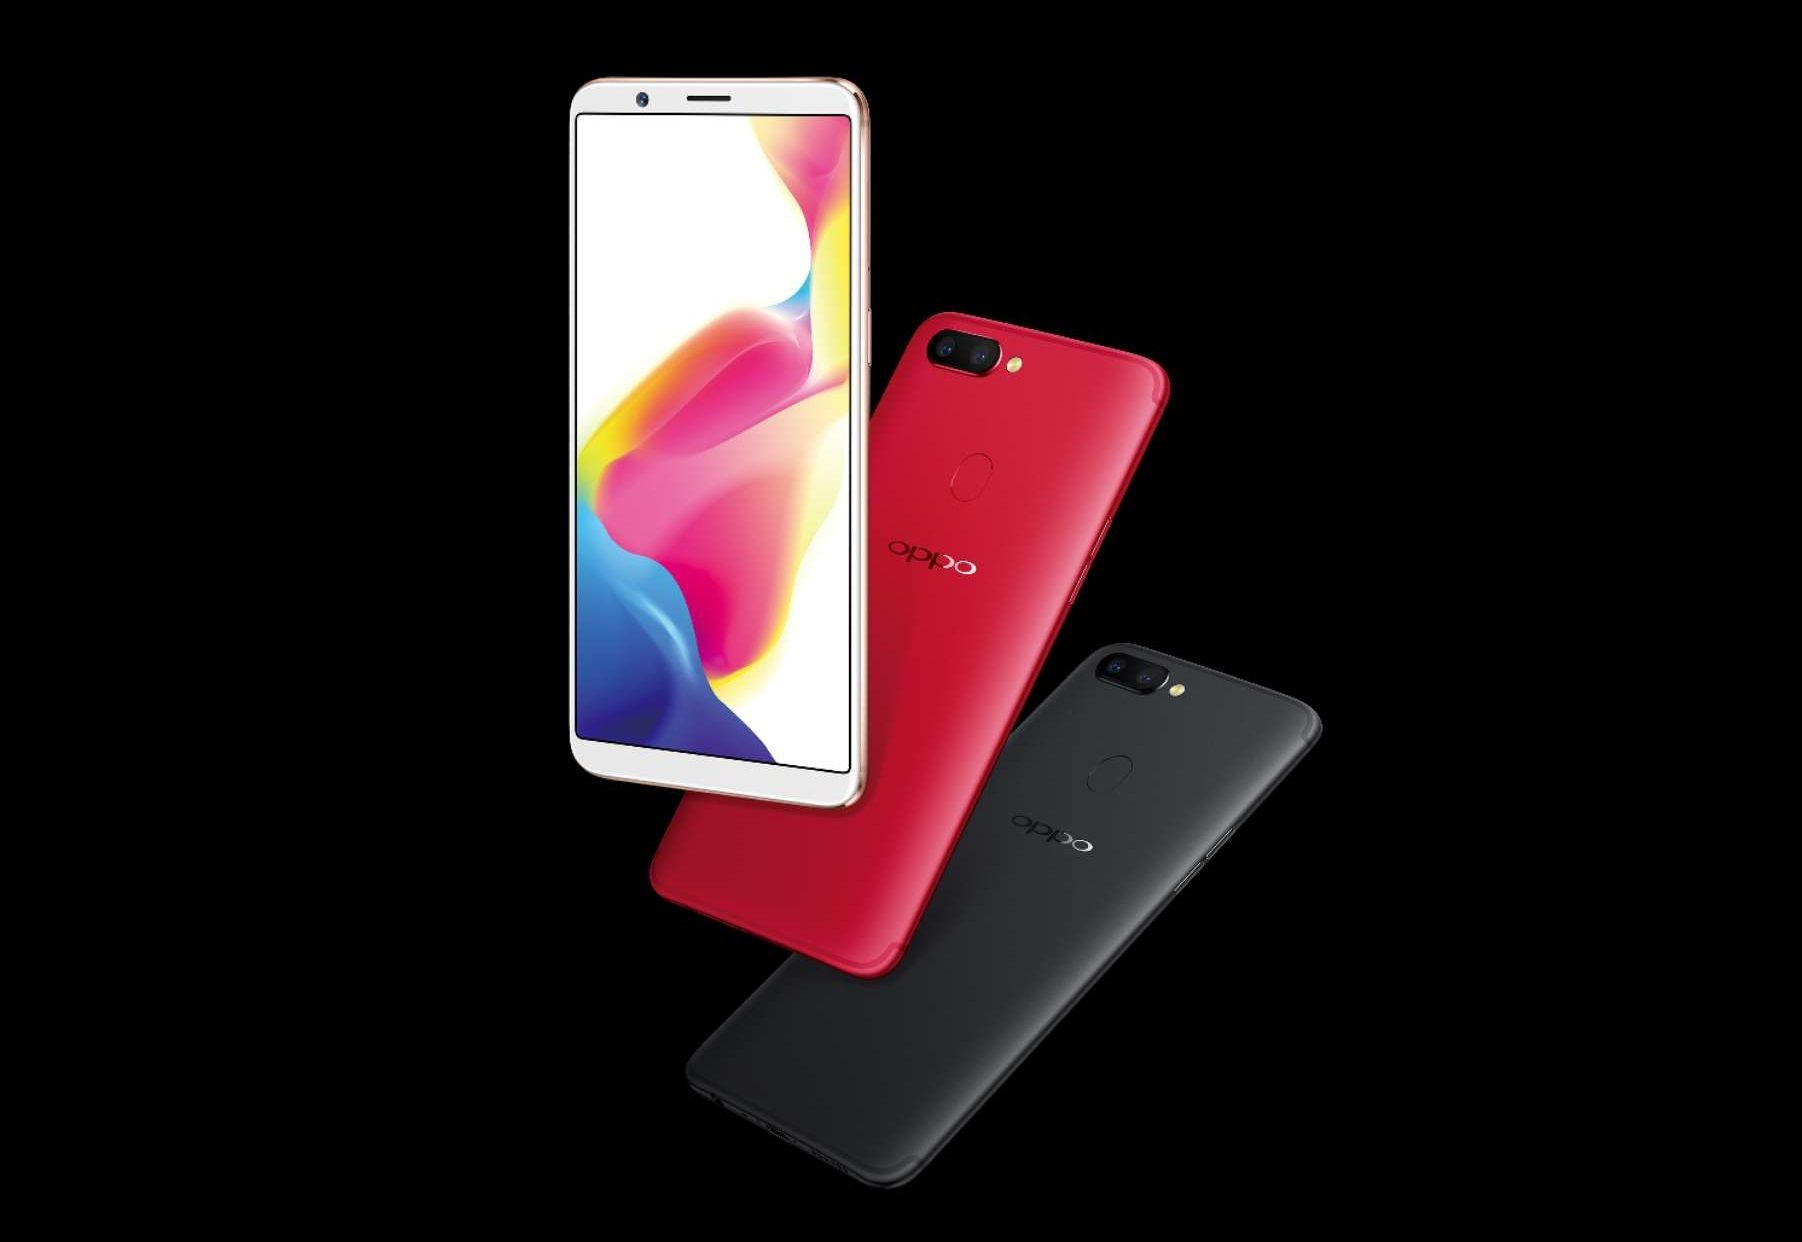 OPPO R11s and R11s Plus revealed with 18 9 displays 16 MP and 20 MP